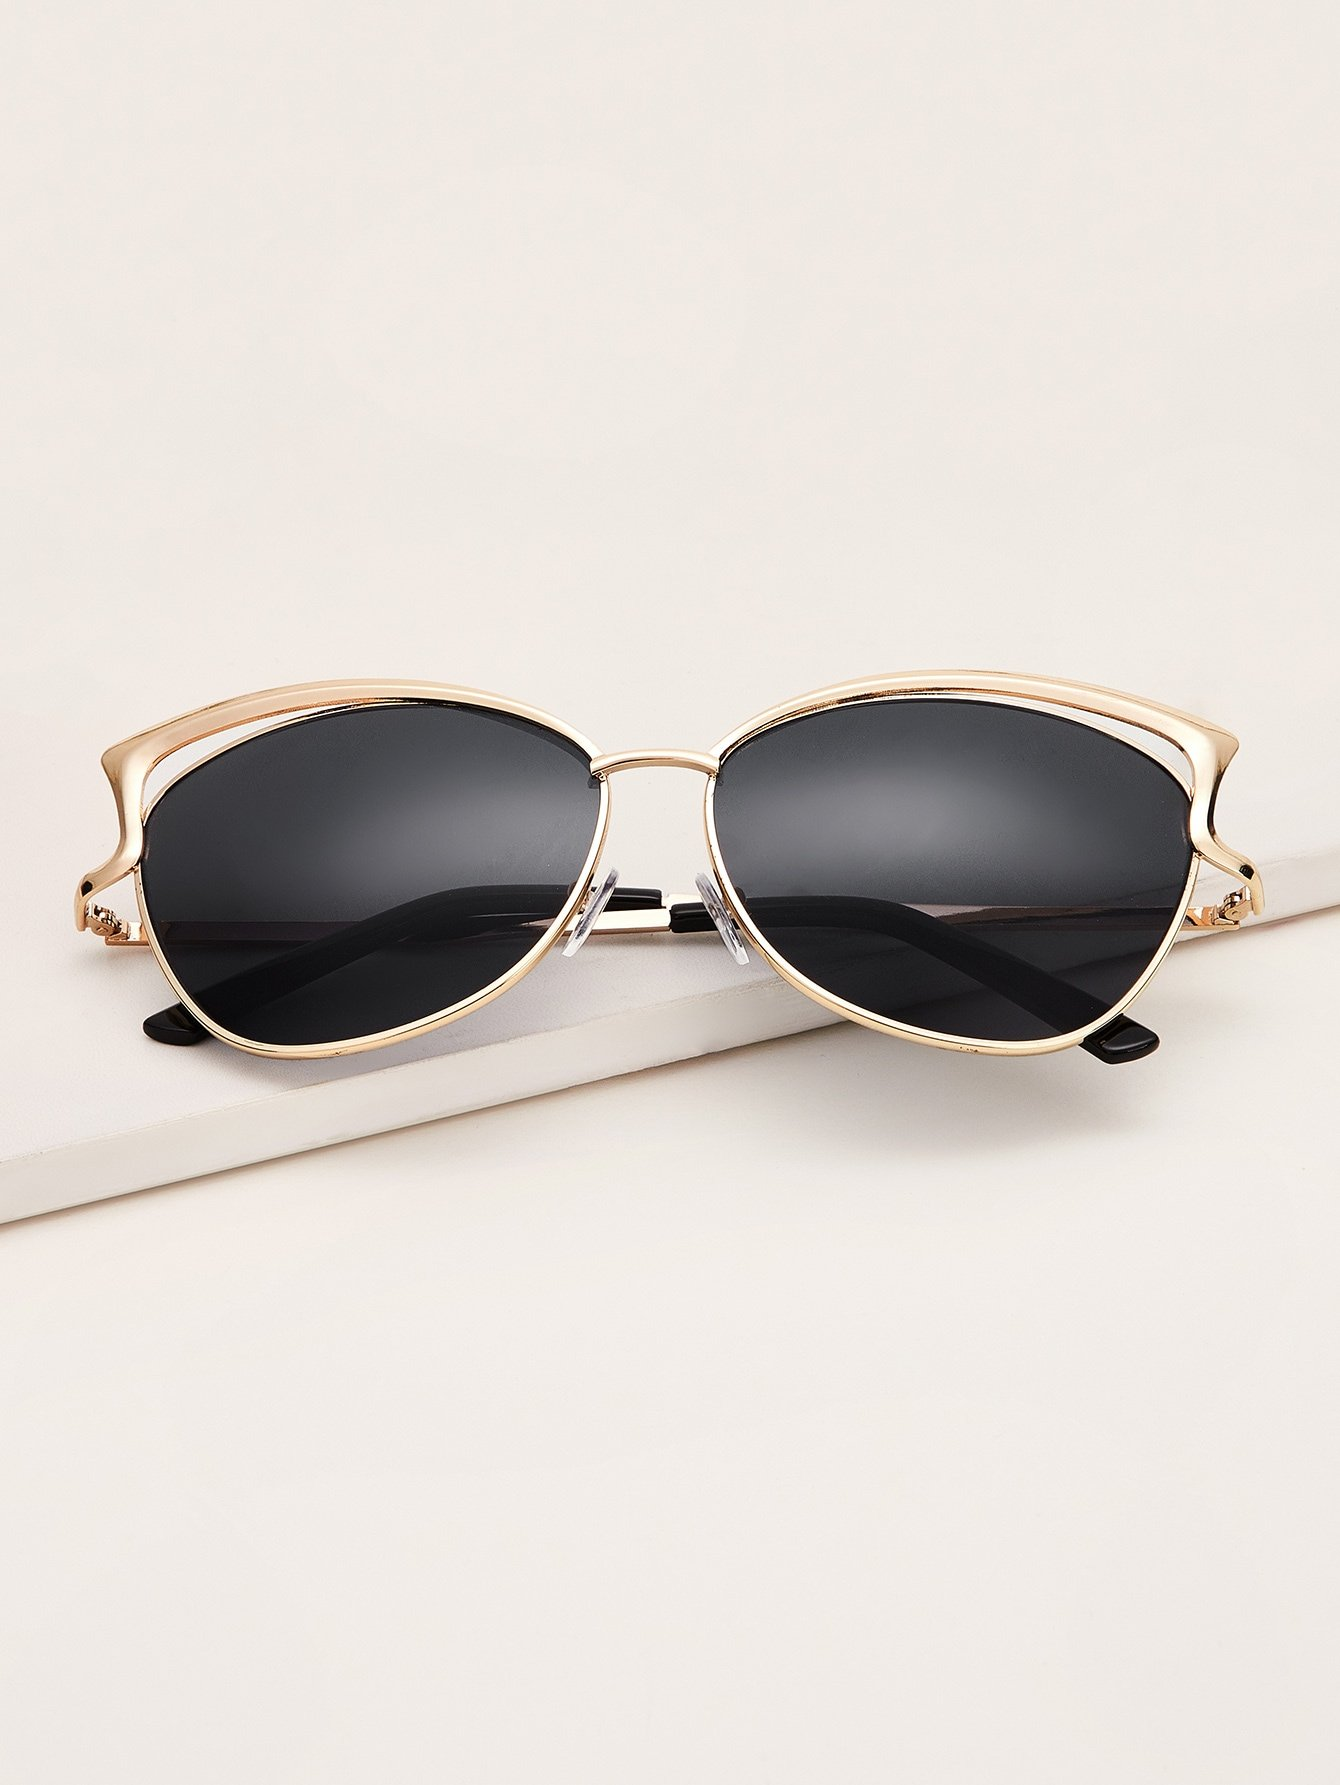 Ear Metal Frame Sunglasses With Case